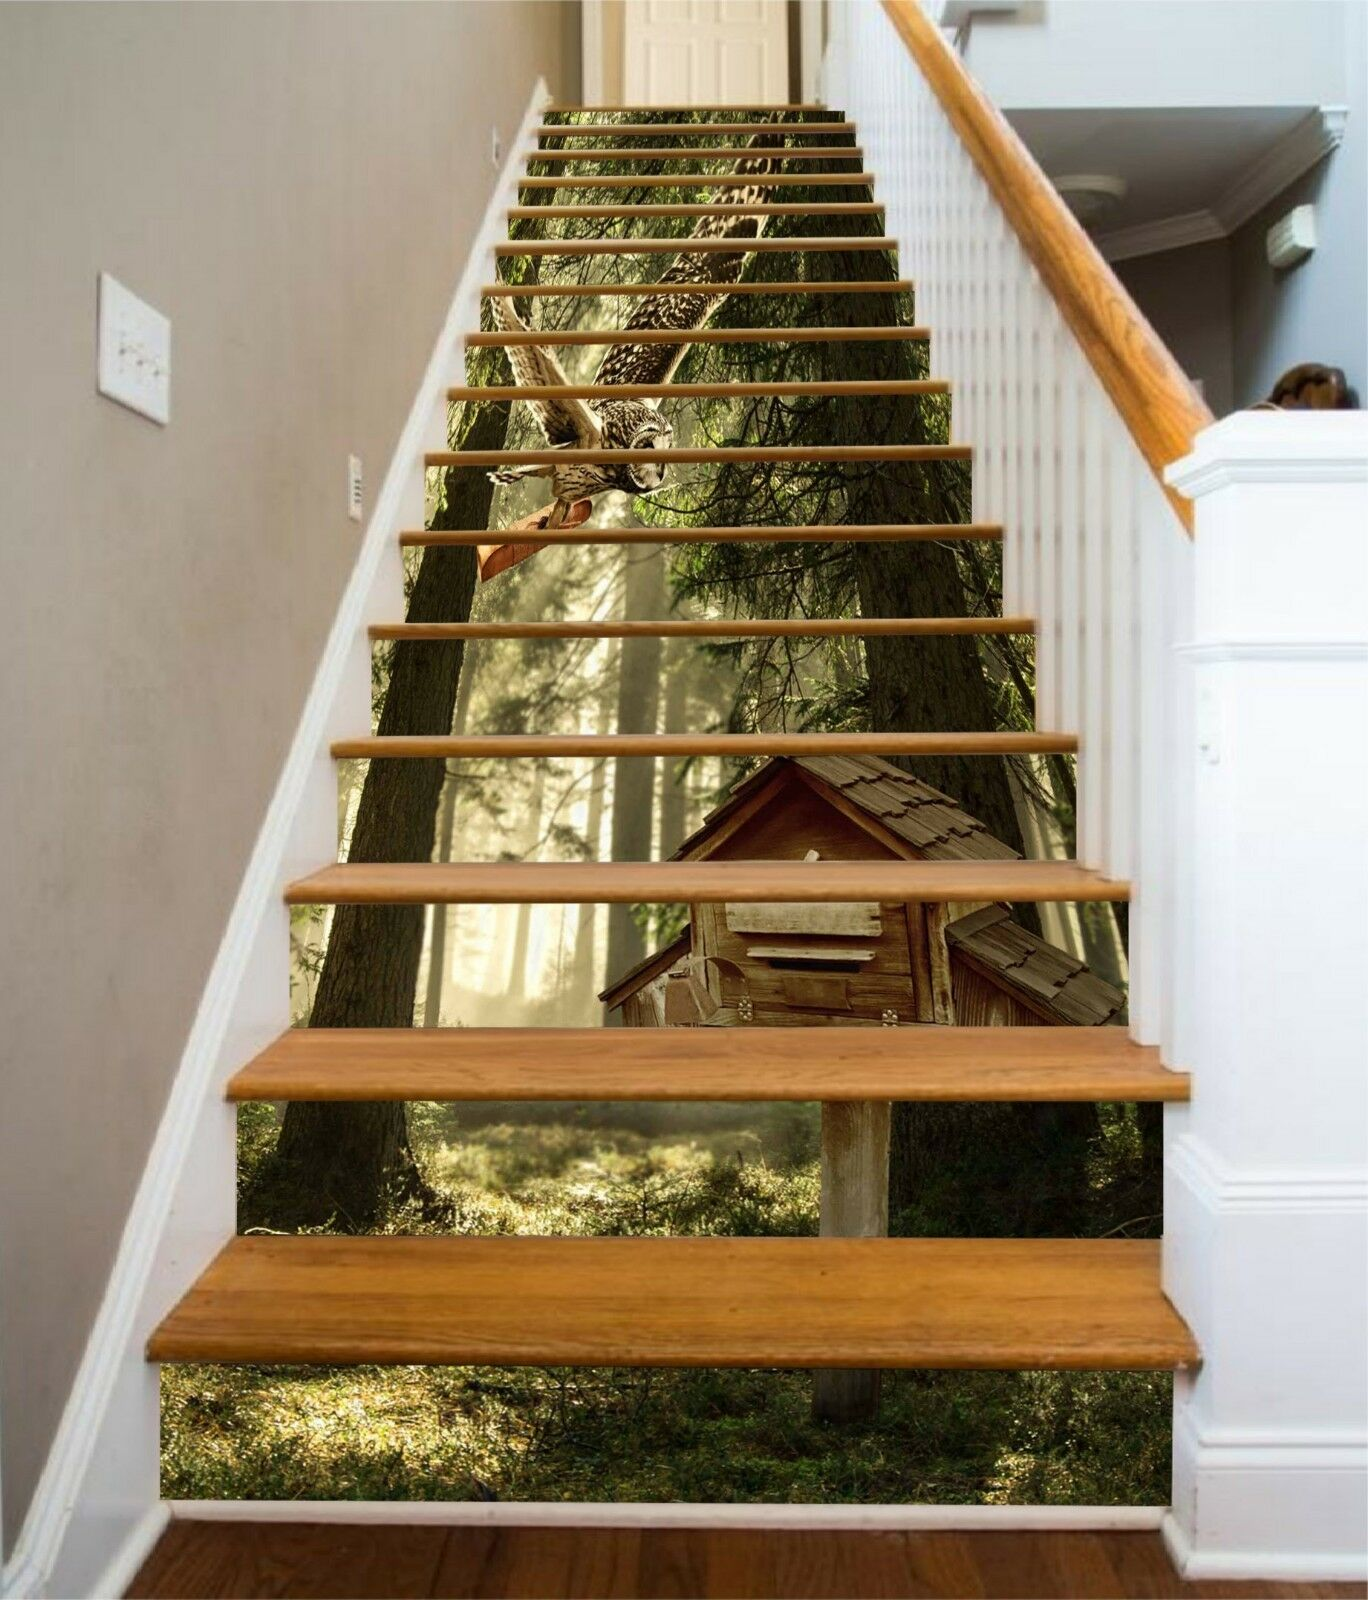 3D Wooden Box Lawn Stair Risers Decoration Photo Mural Vinyl Decal Wallpaper CA